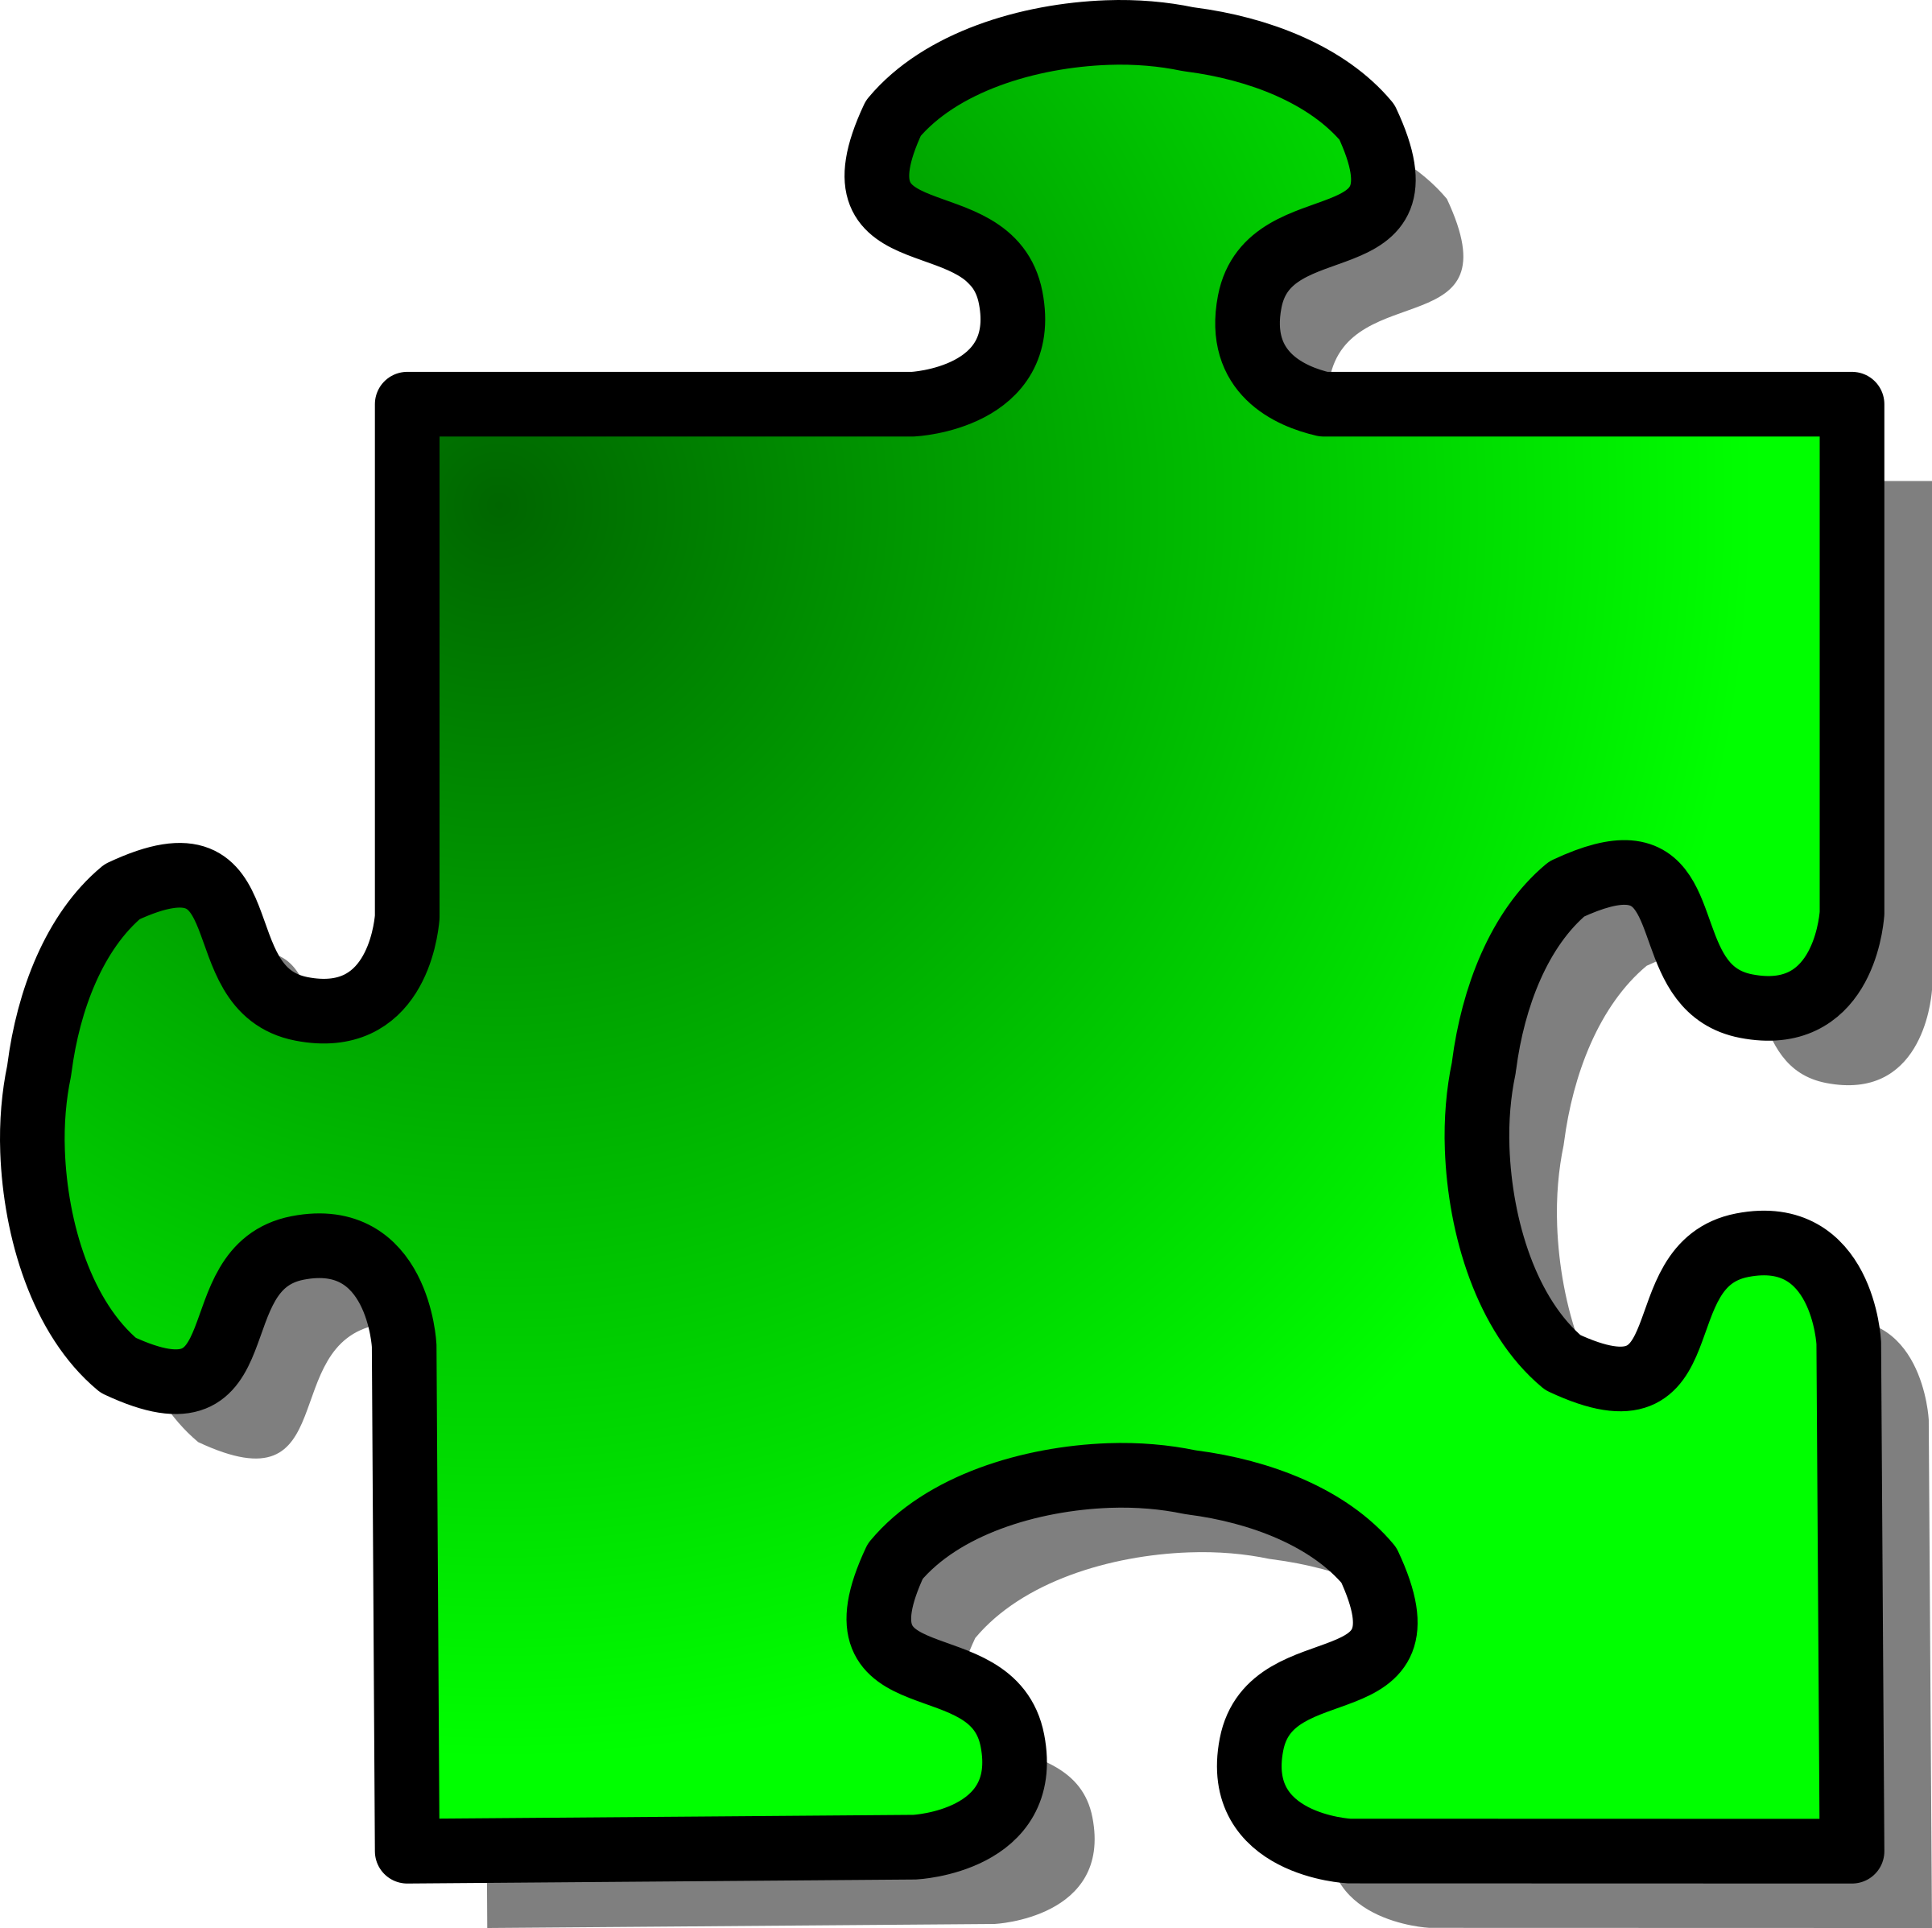 Green Jigsaw piece 12 by nicubunu